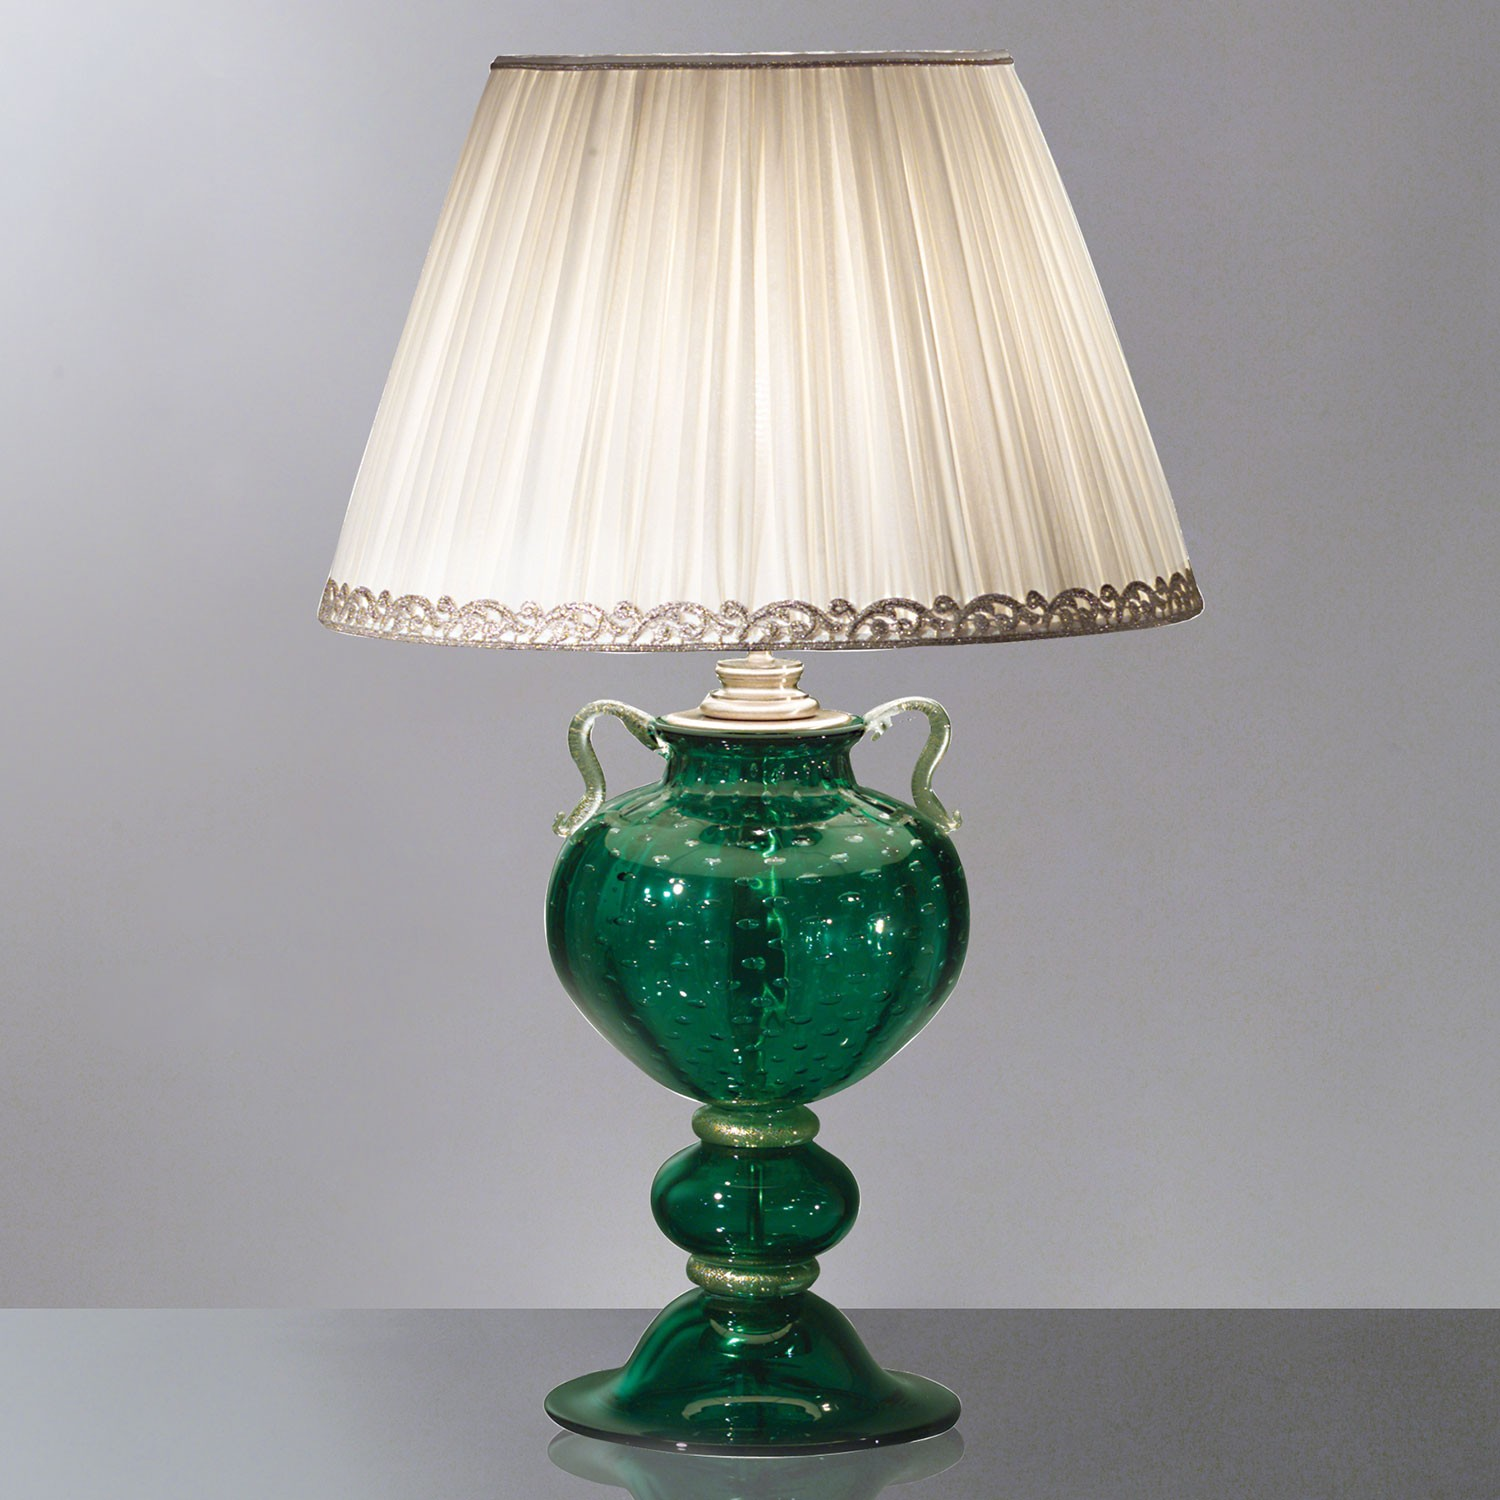 Leandra green murano glass table lamp murano glass chandeliers leandra green murano glass table lamp murano glass chandeliers mozeypictures Image collections